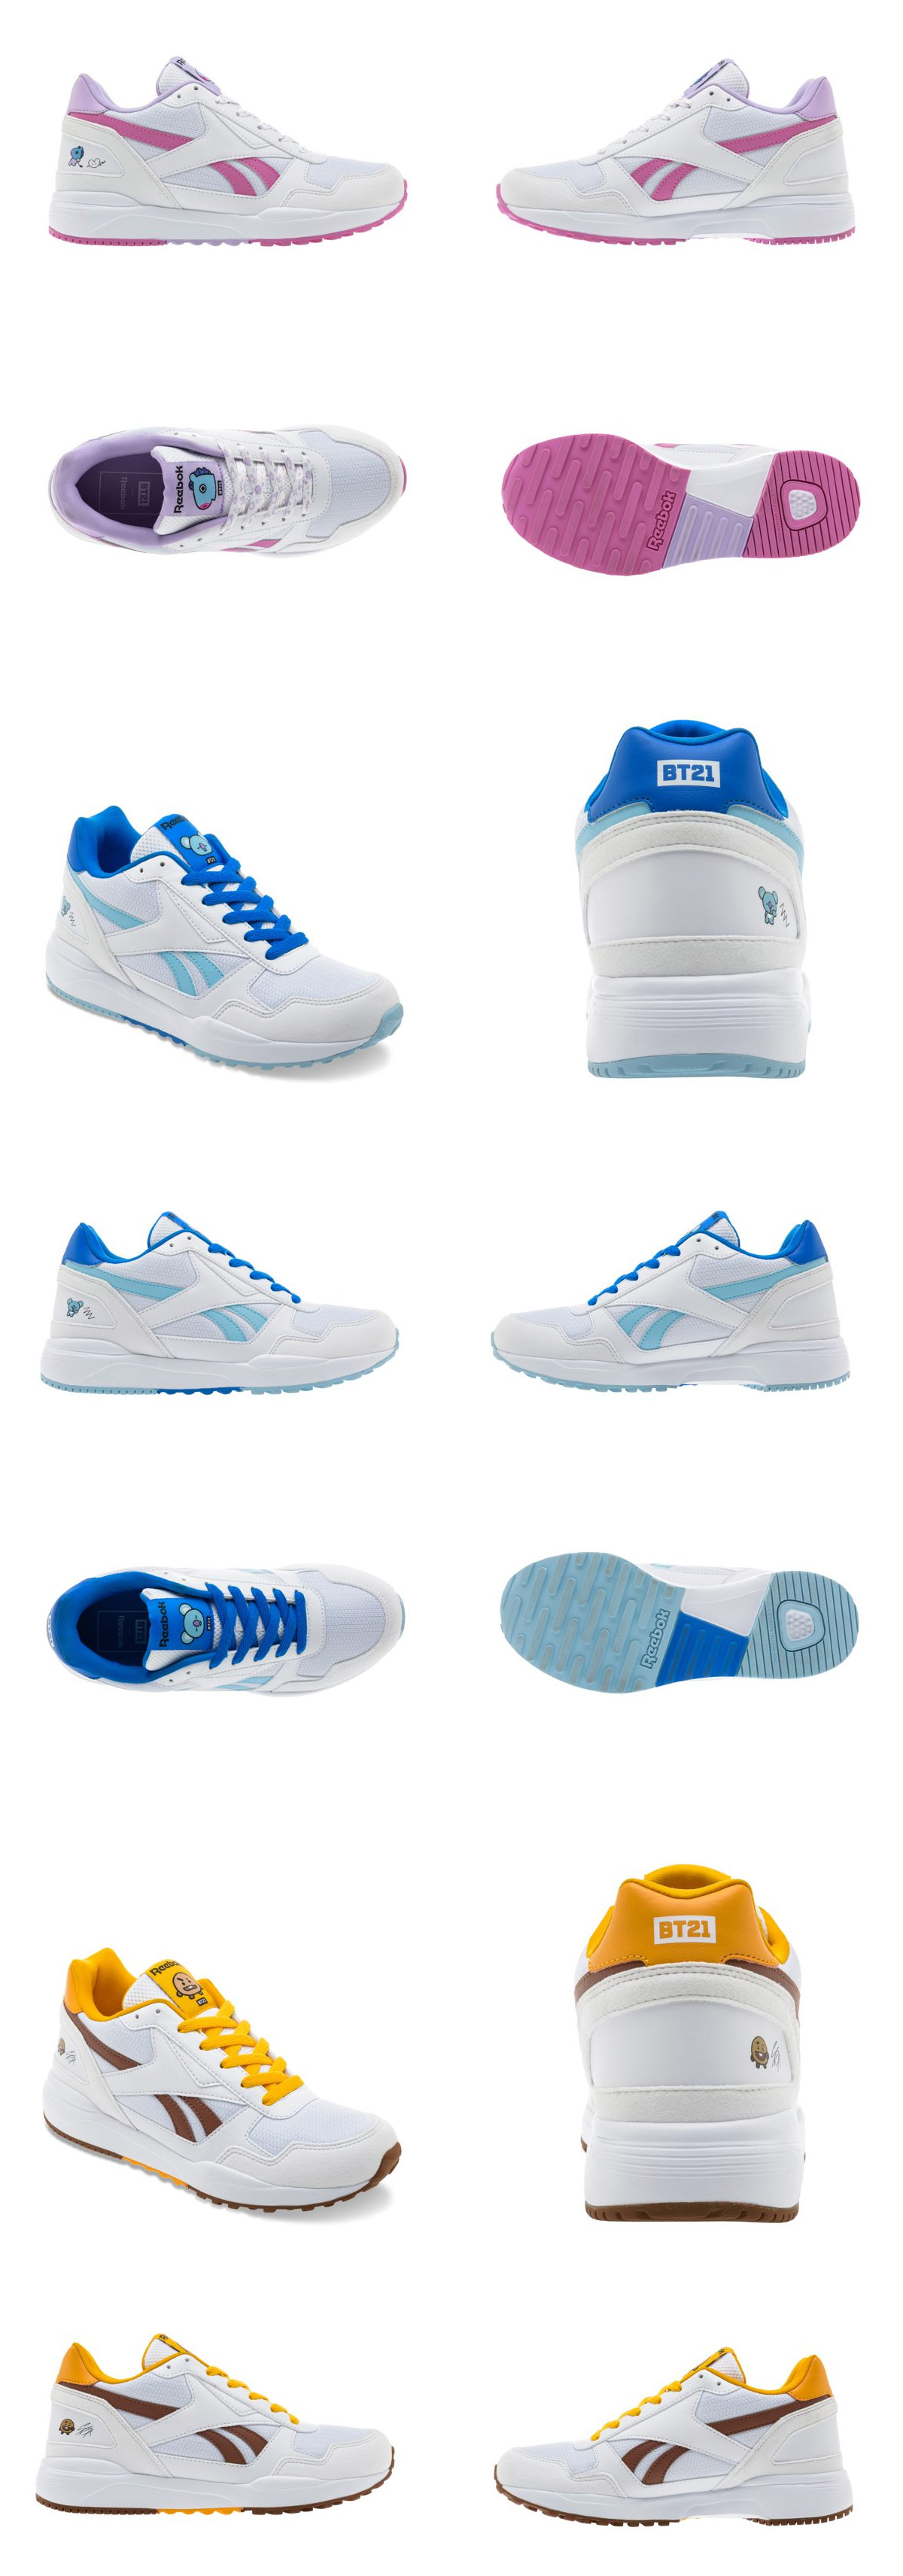 7bef64cdee7  BT21  Reebok Collaboration - Royal Bridge 2.0. Product Information. -  Material   Composition Leather